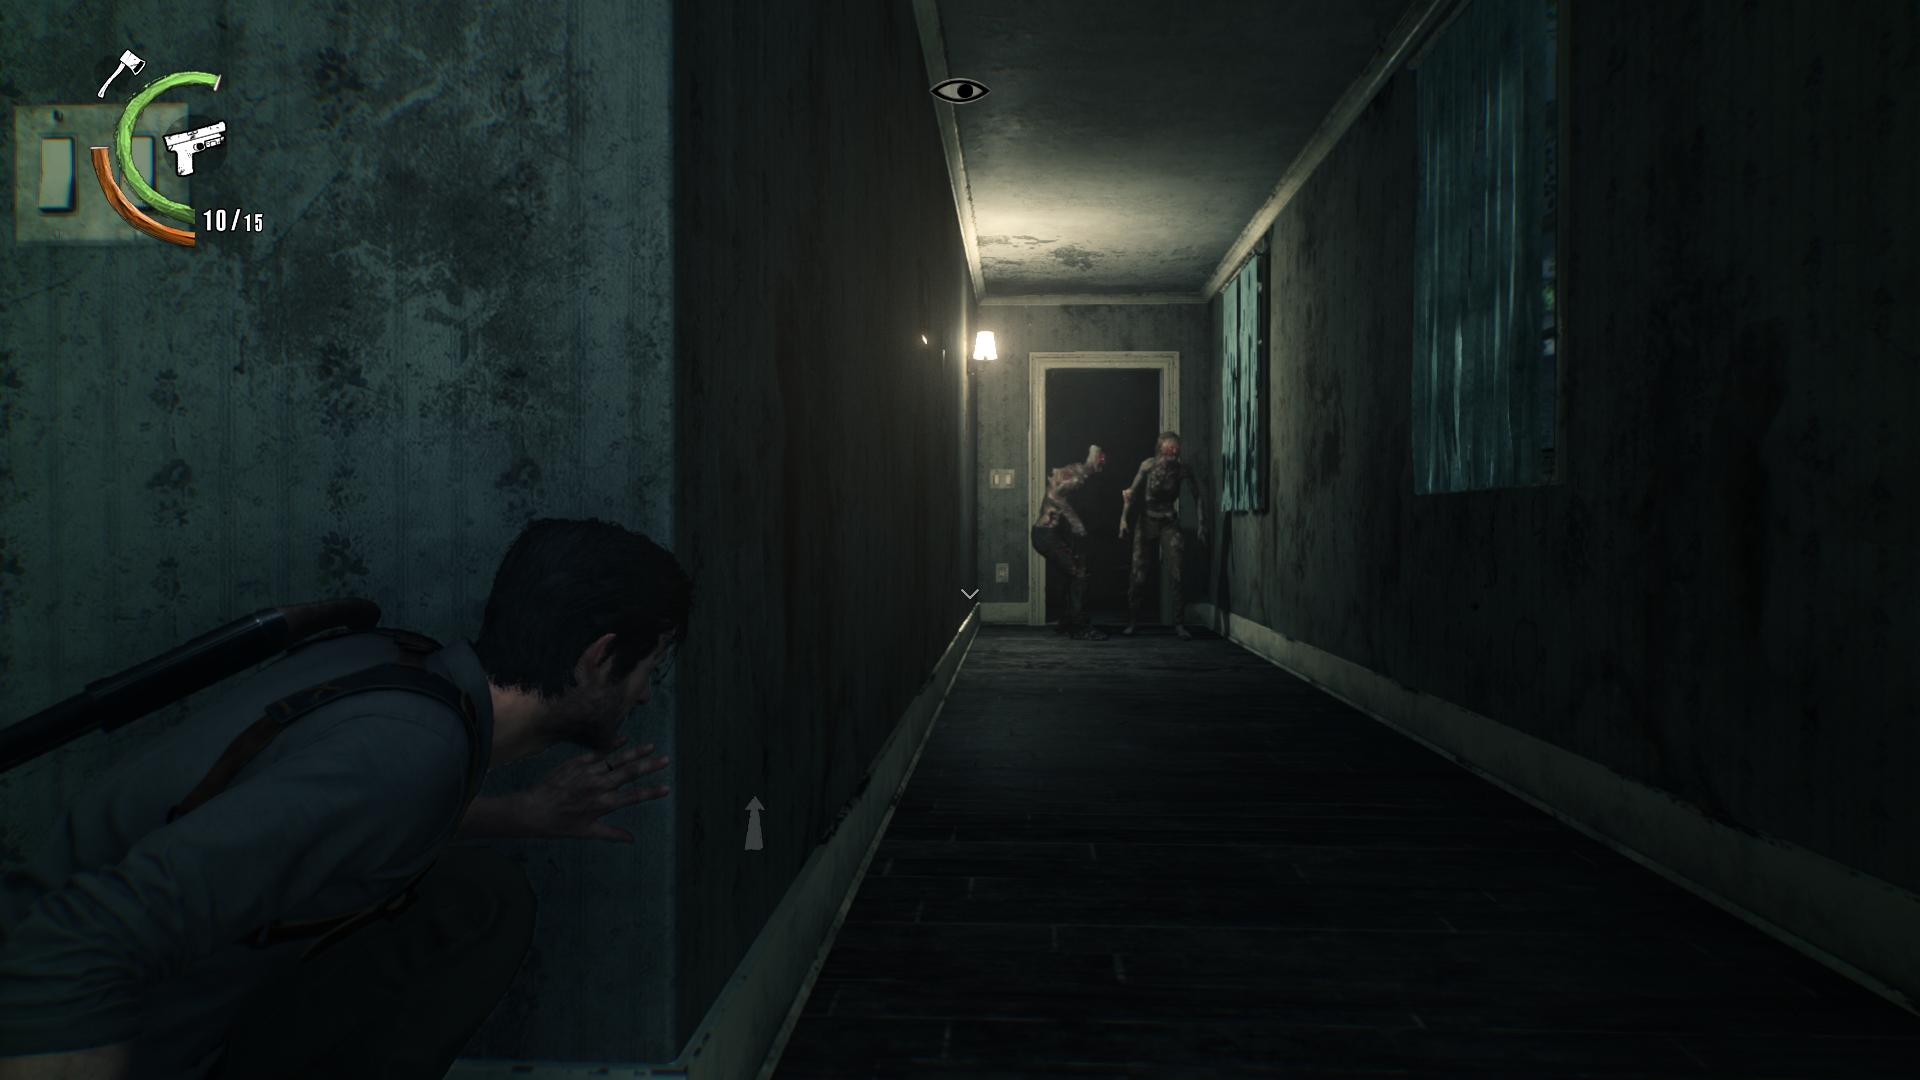 00035.Jpg - Evil Within 2, the